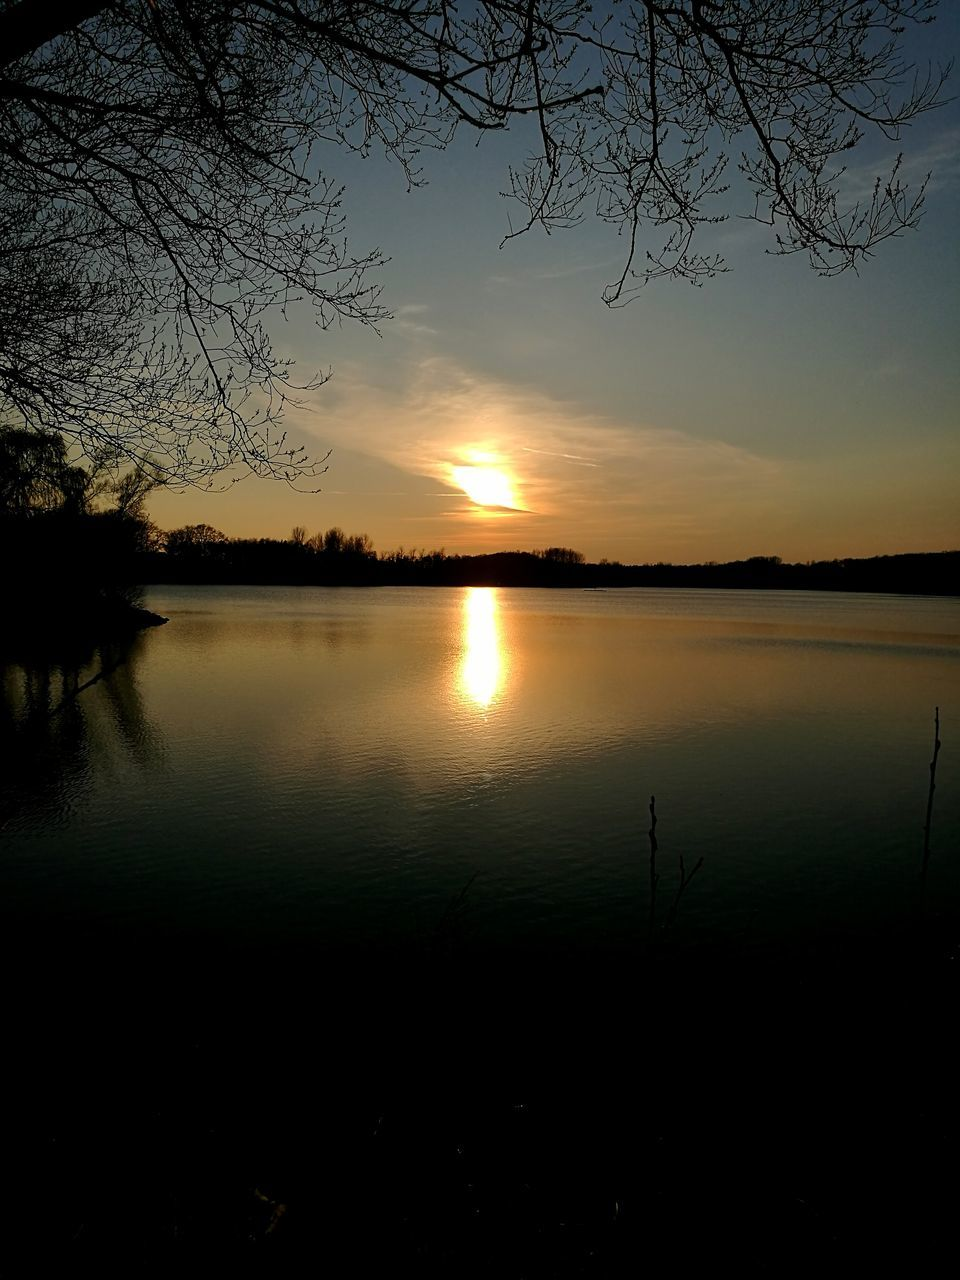 sunset, silhouette, beauty in nature, nature, reflection, scenics, tranquil scene, tranquility, water, lake, tree, sky, no people, outdoors